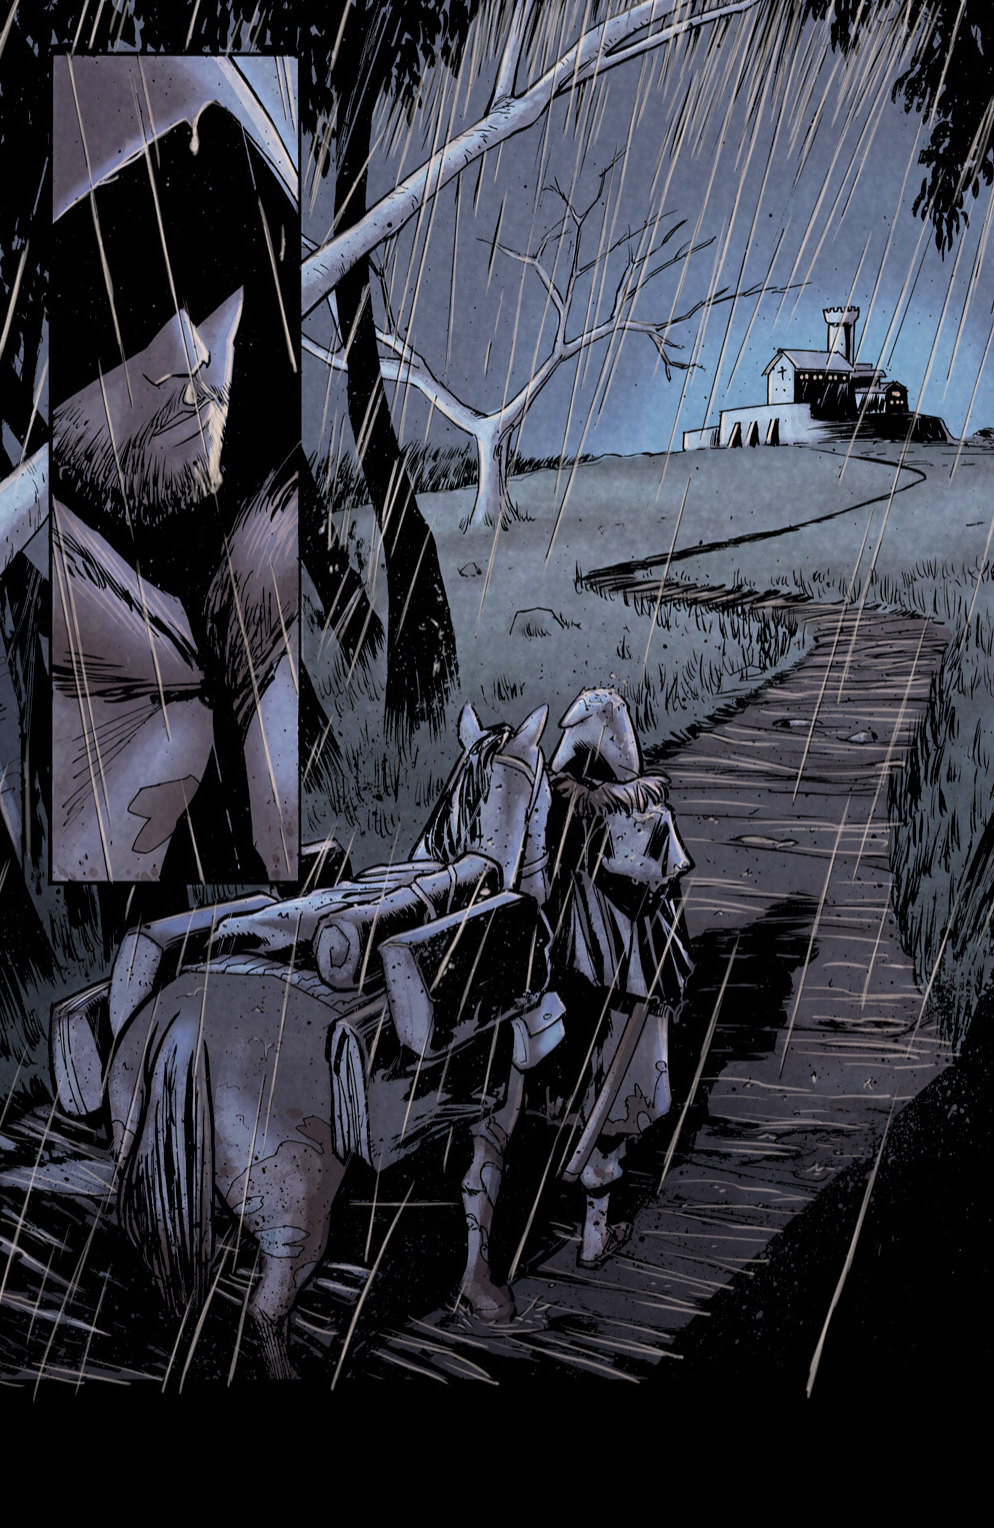 THE LAST SIEGE #1 PG 01-26 PREVIEW-6.jpg